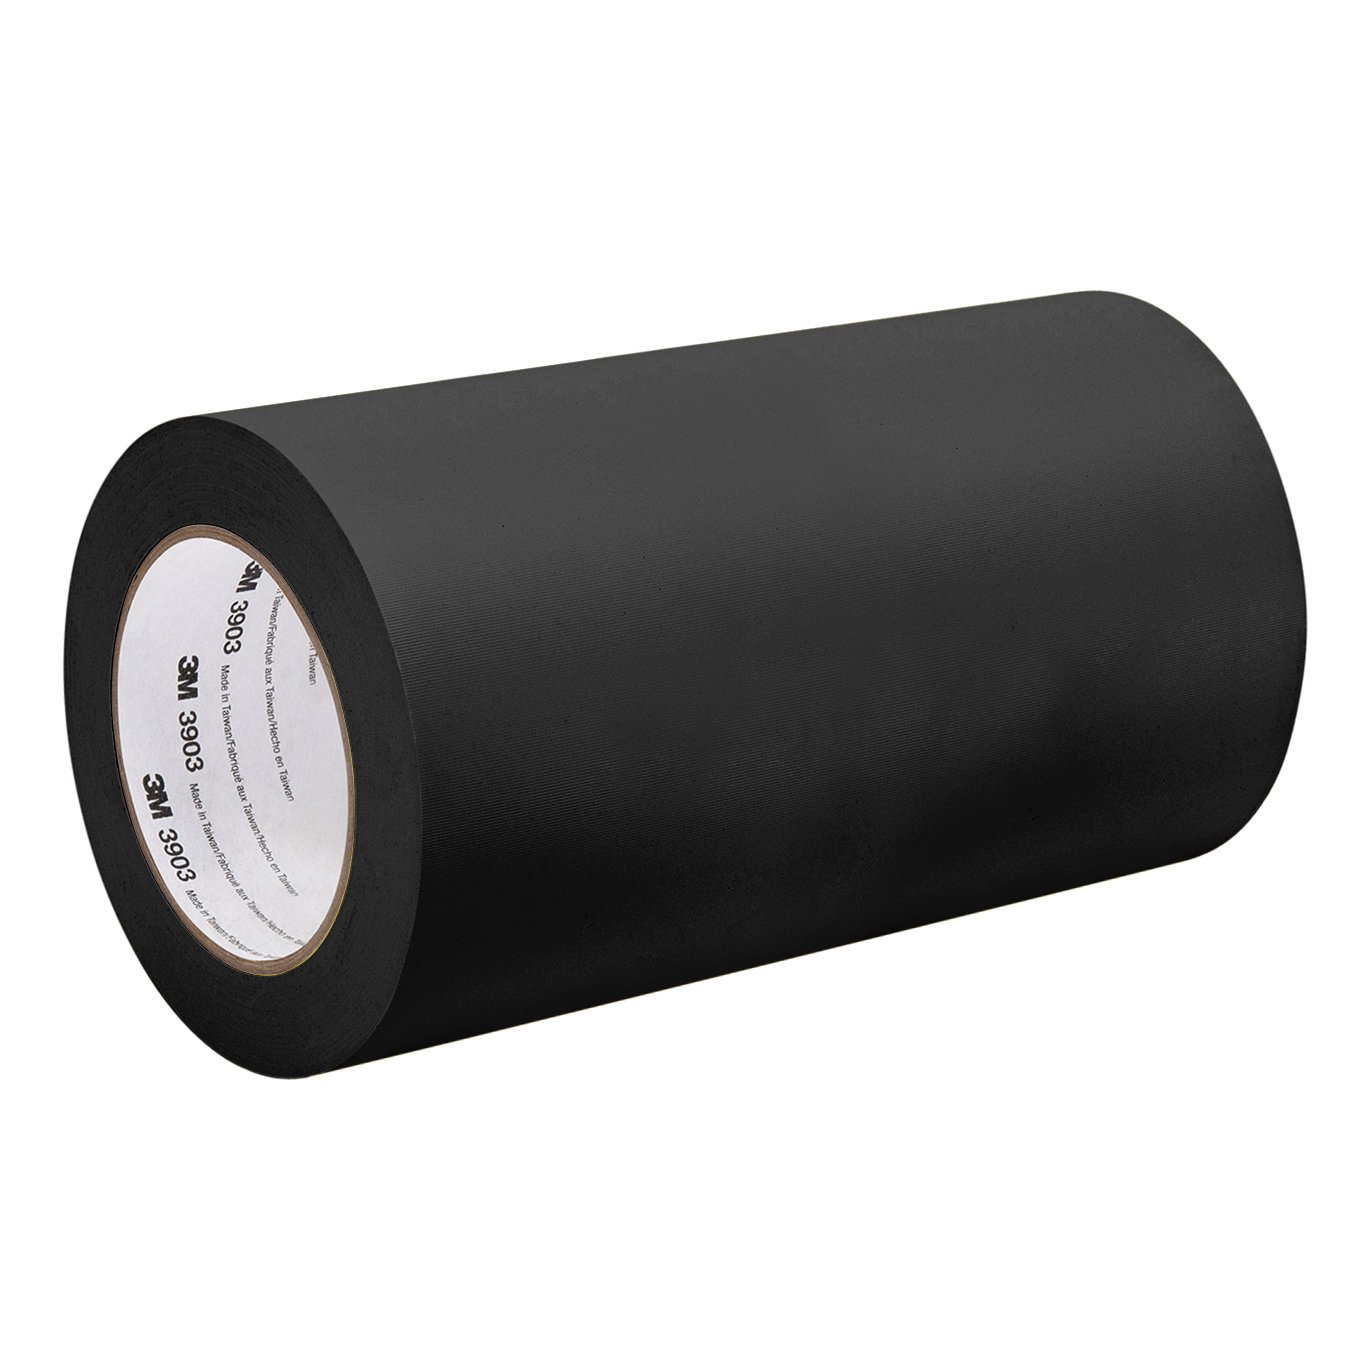 3M Black Vinyl/Rubber Adhesive Duct Tape 3903, 39-50-3903-BLACK 12.6 psi Tensile Strength, 50 yd. length, 39'' width